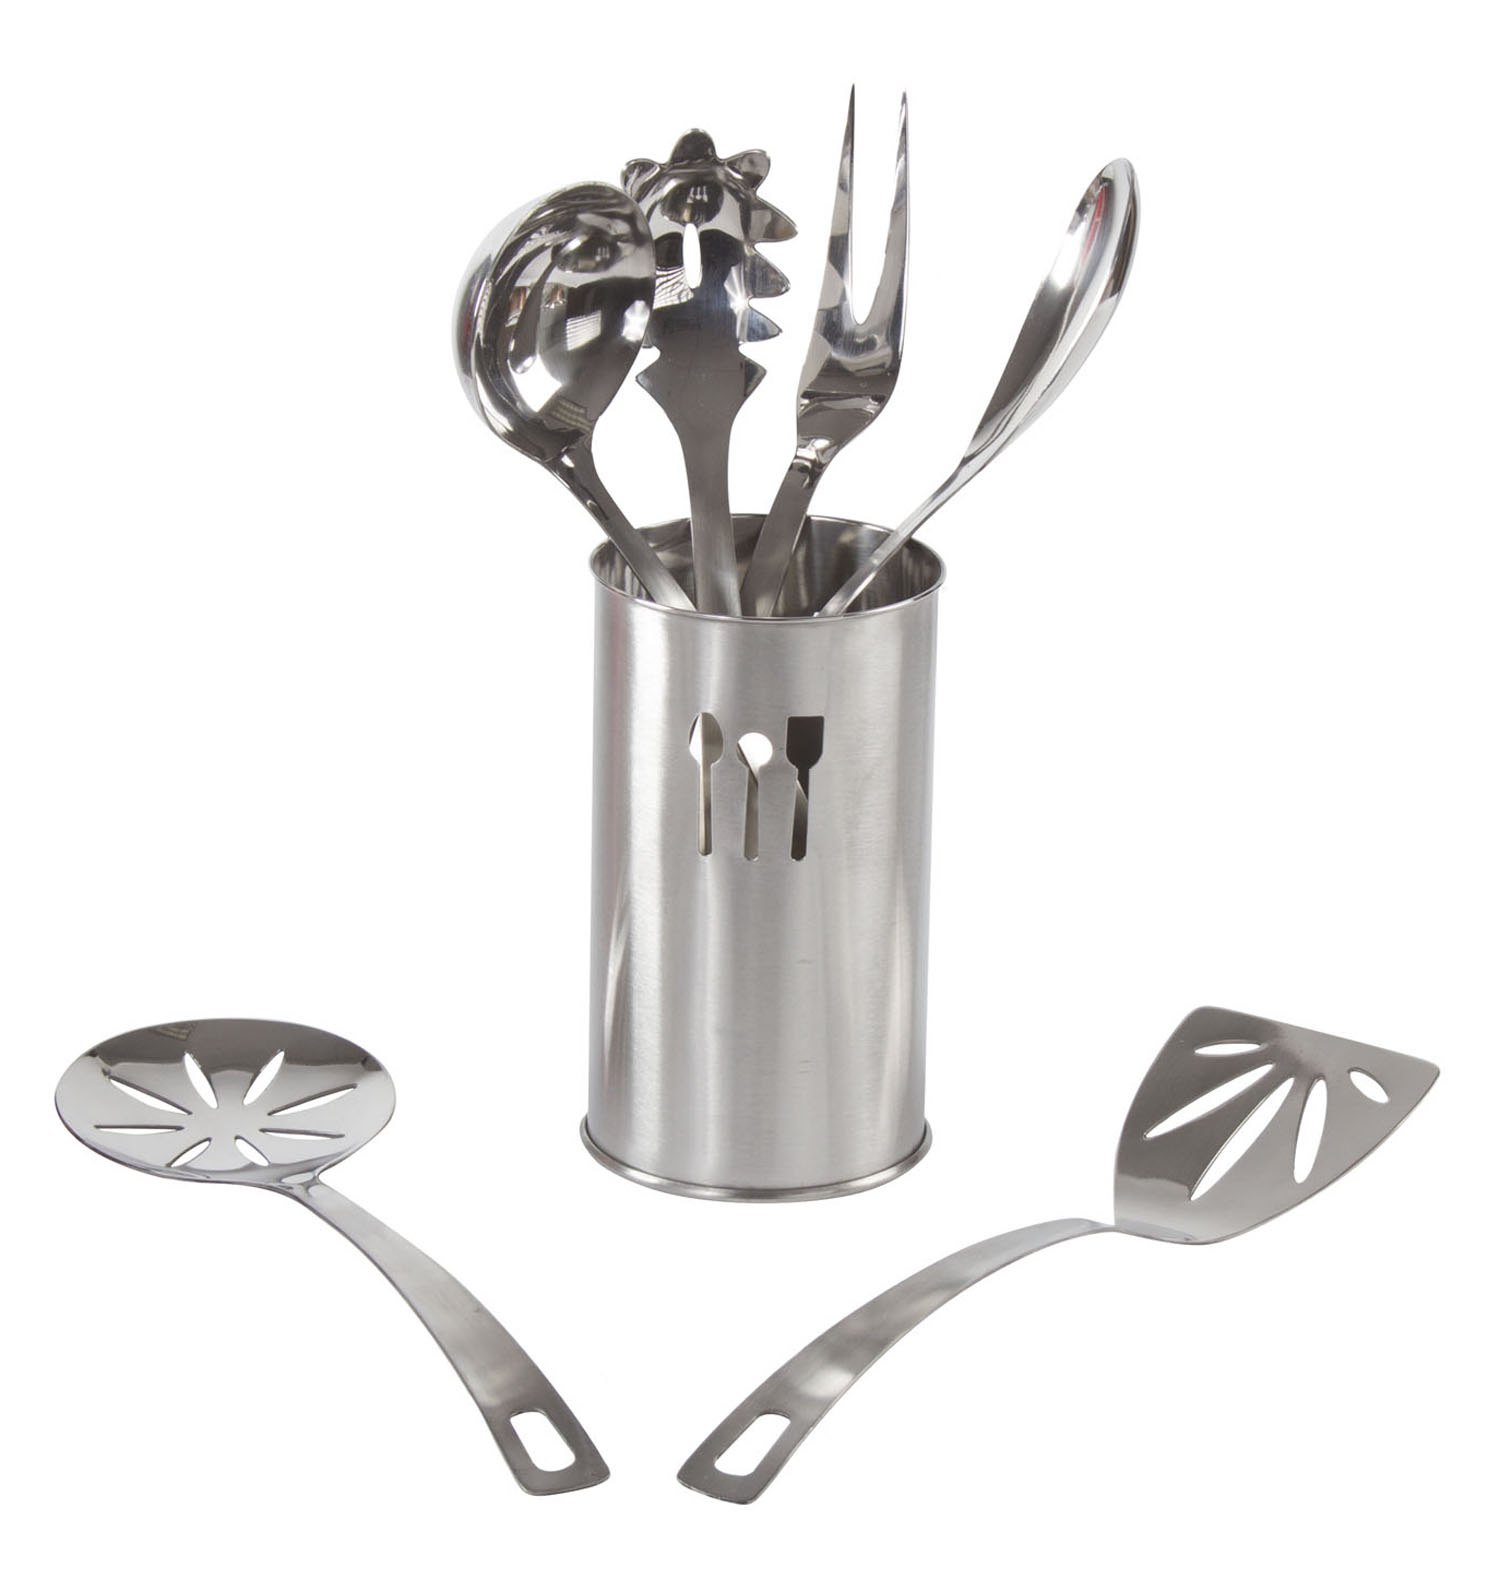 Home Kitchen Utensils – 7 Pc Stainless Steel Cooking Utensil Set & Holder